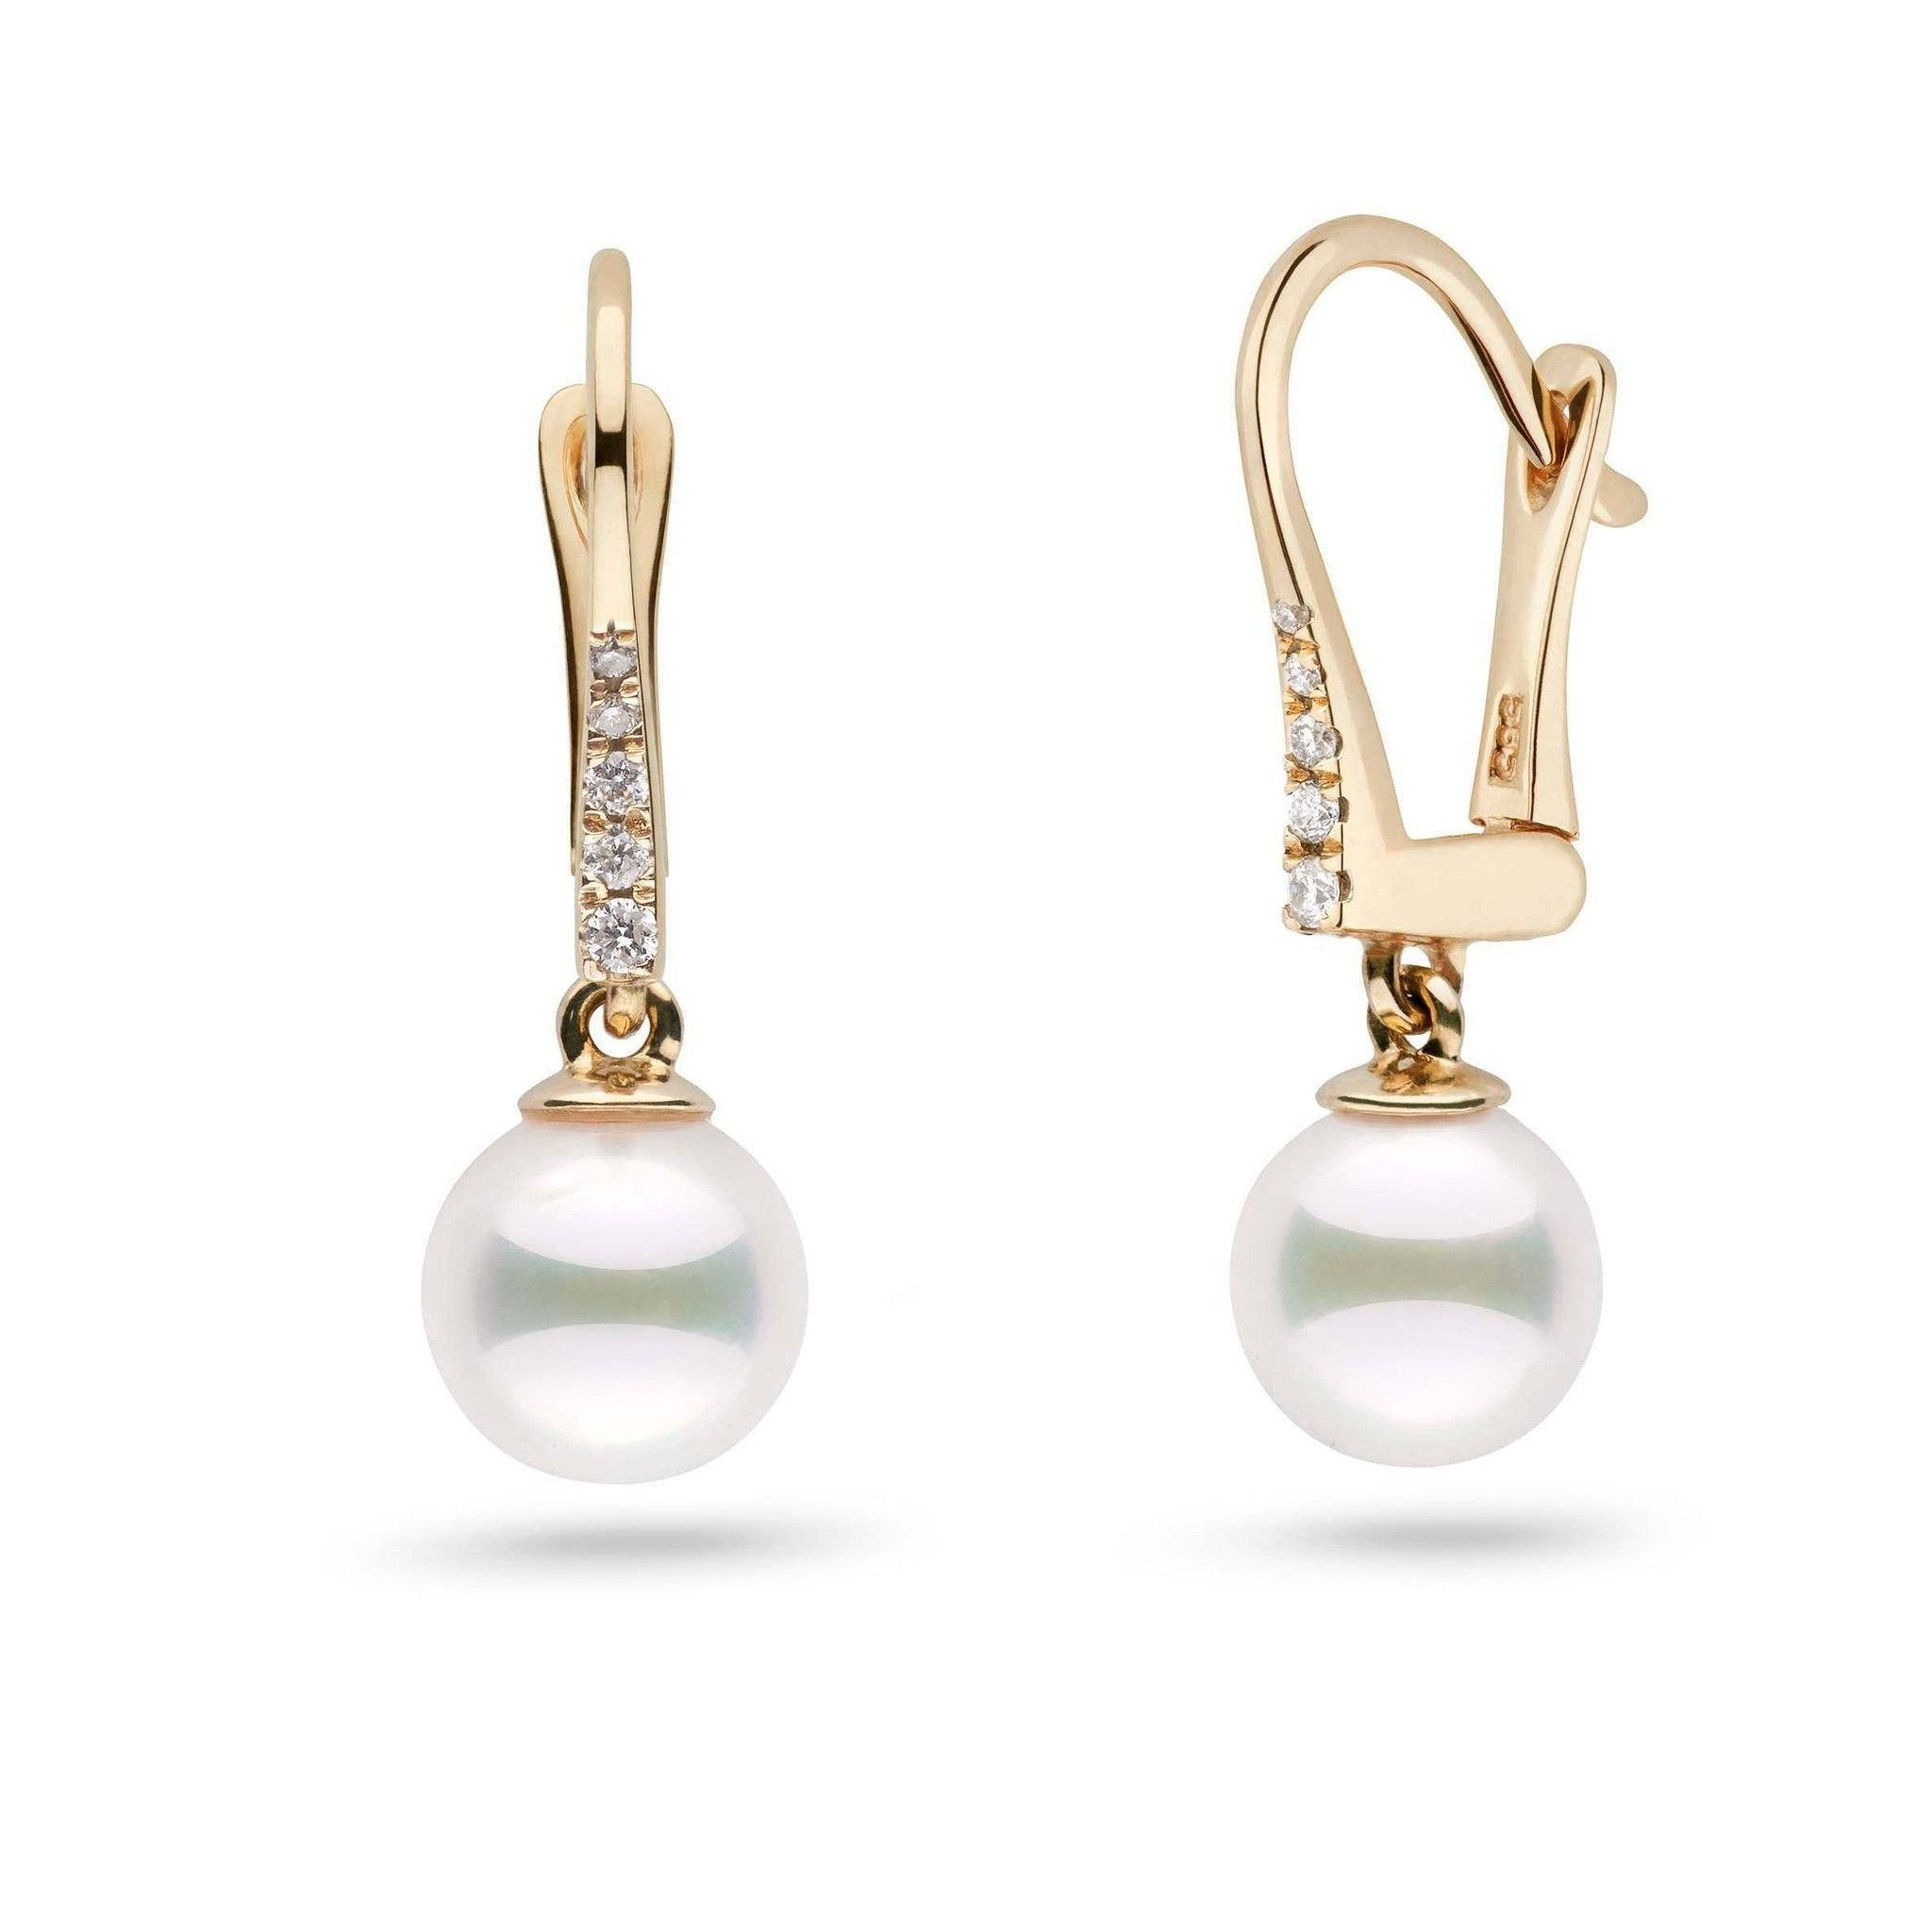 Allure Collection Akoya 7.0-7.5 mm Pearl & Diamond Dangle Earrings